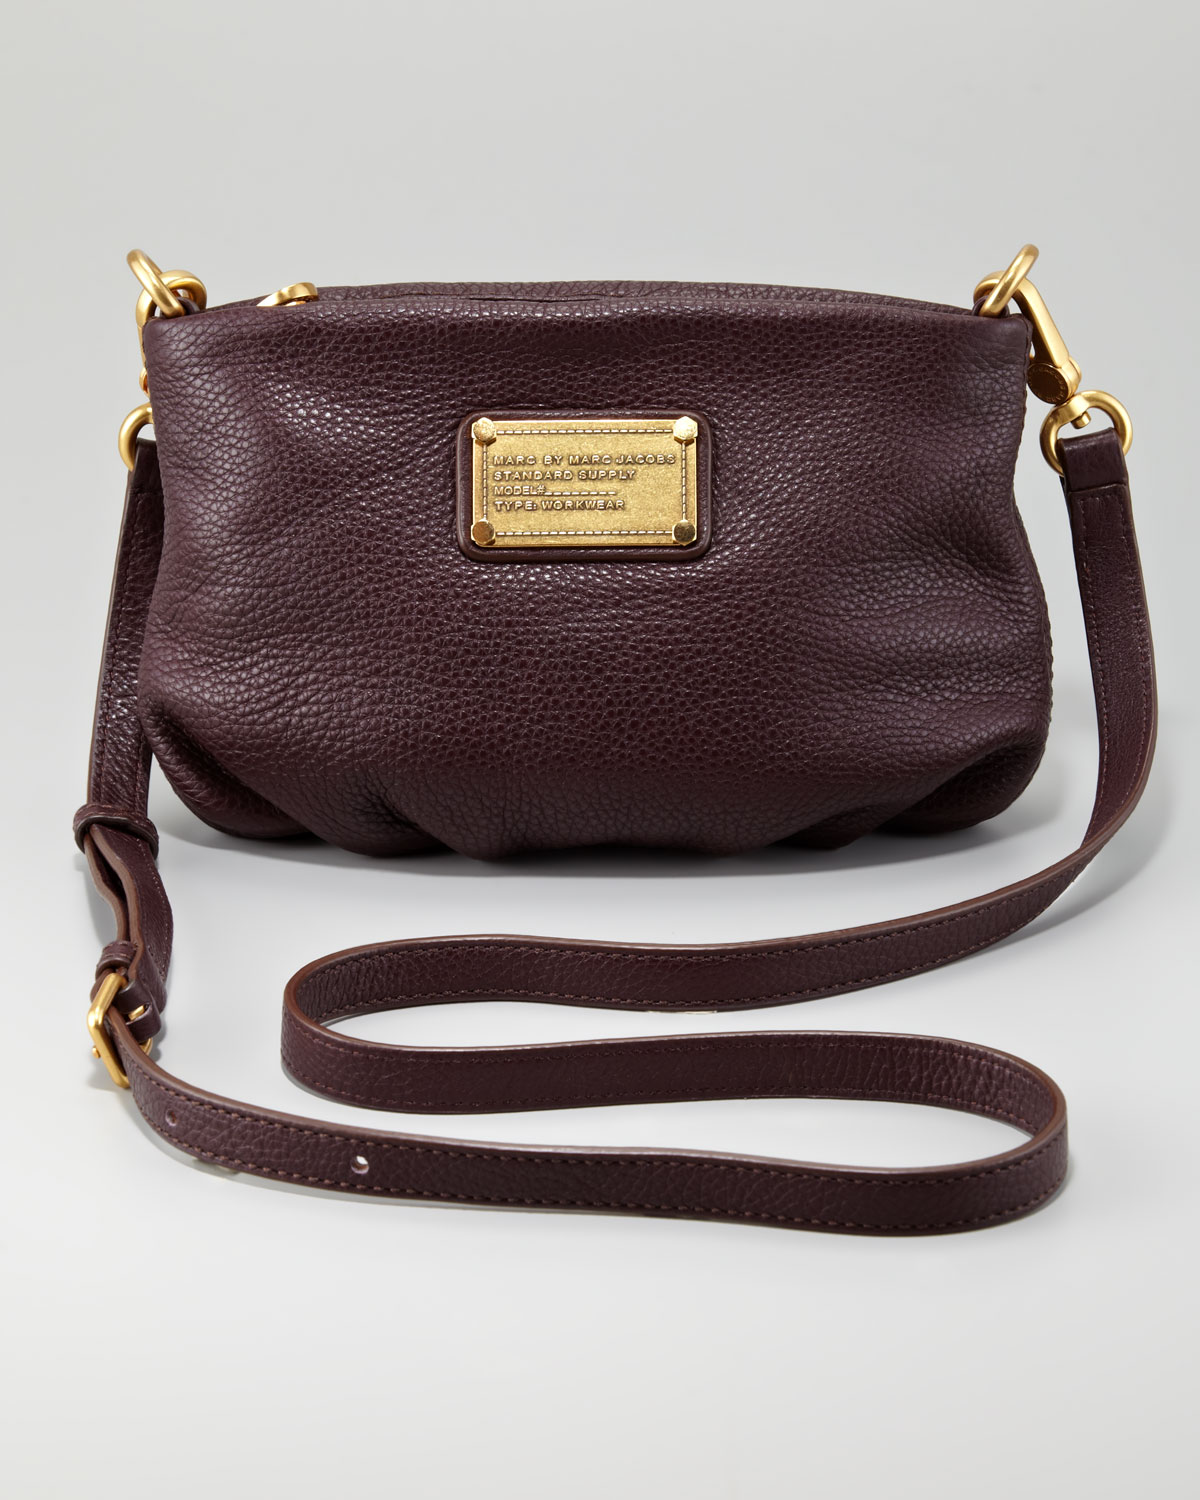 29980f583991 Marc By Marc Jacobs Classic Q Percy Crossbody Bag in Brown - Lyst